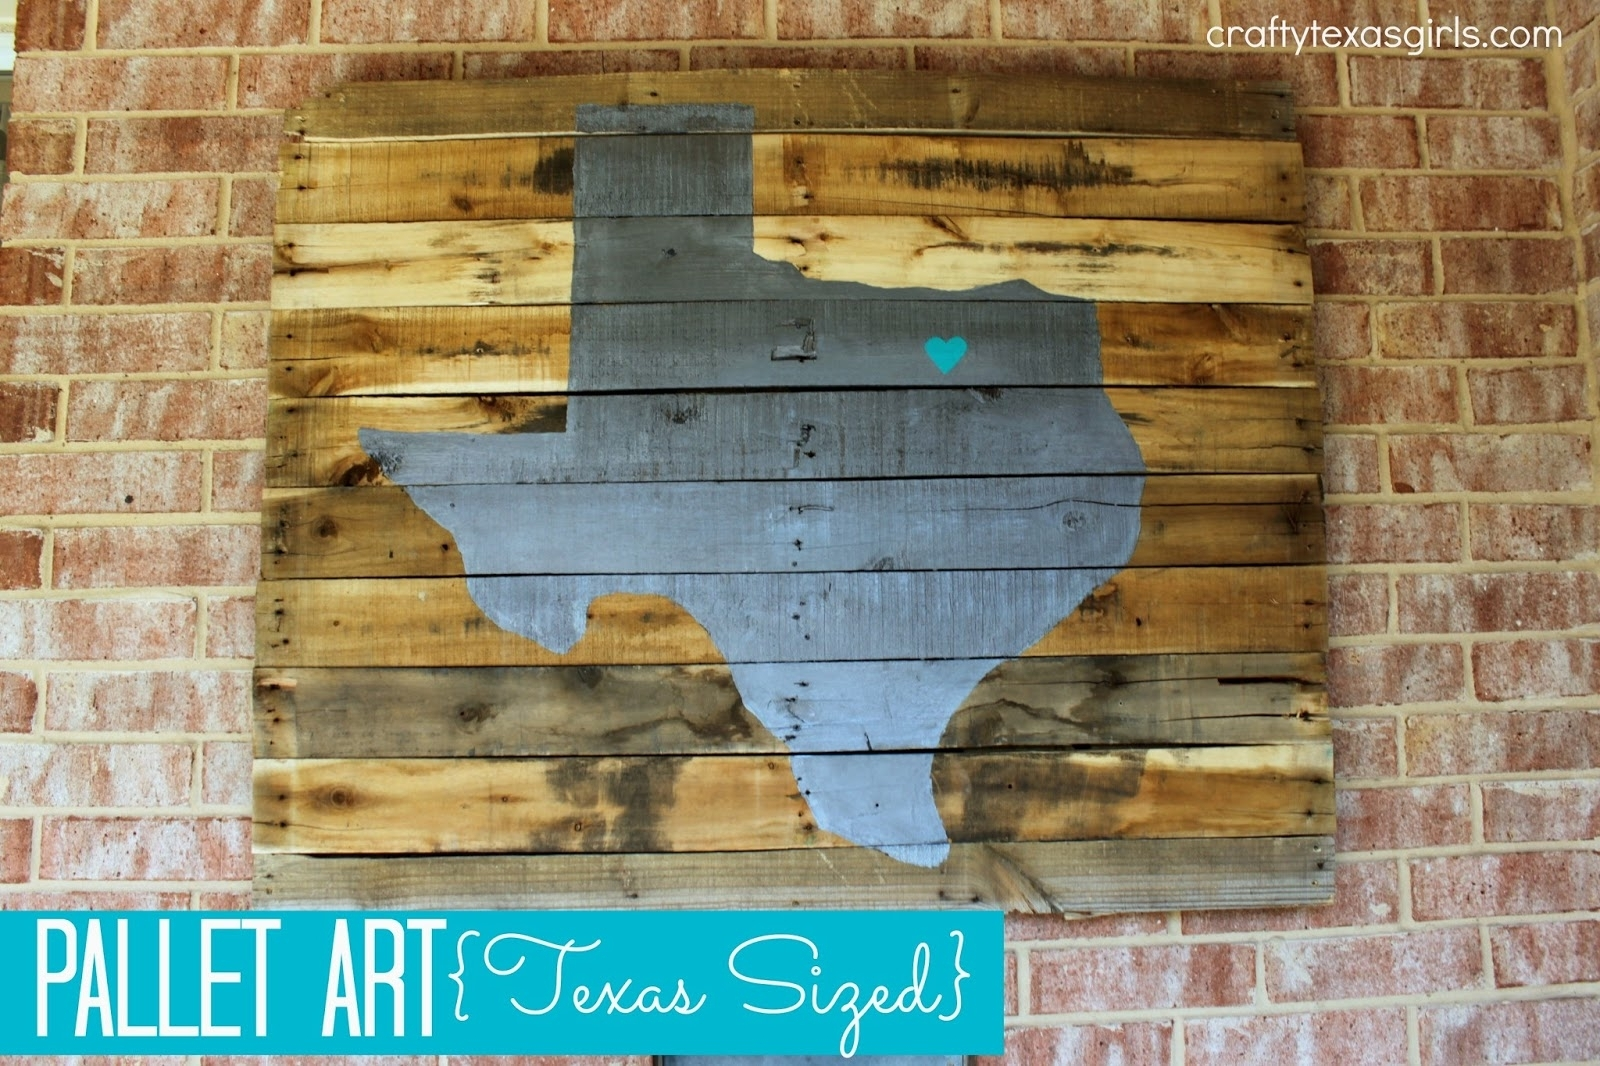 Texas Wood Wall Art Crafty Texas Girls Craft It Pallet Art {Texas Regarding Most Up To Date Texas Wall Art (View 14 of 20)